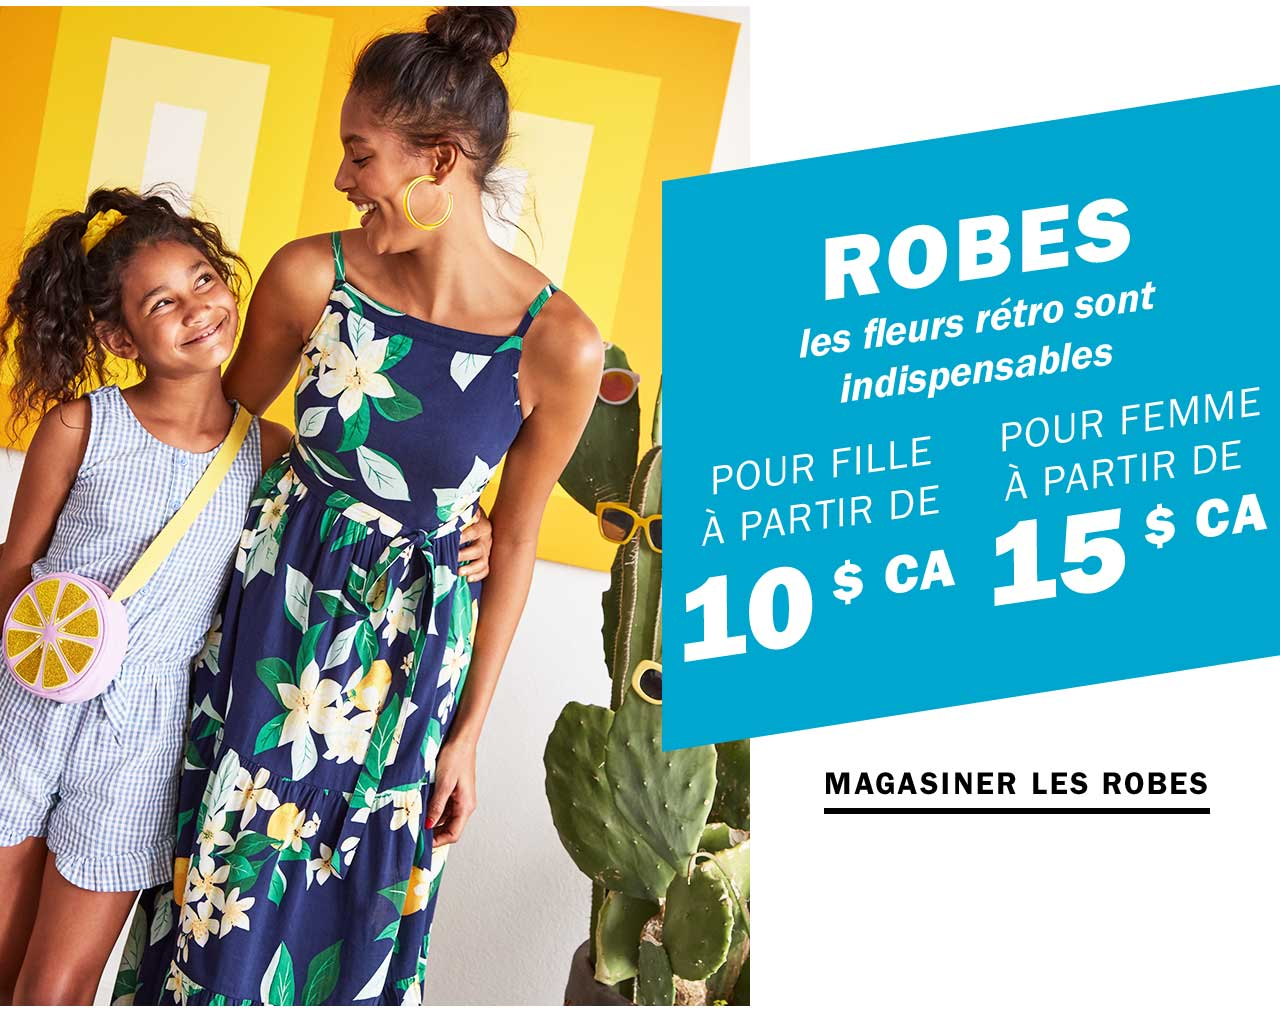 ROBES | MAGASINER LES ROBES